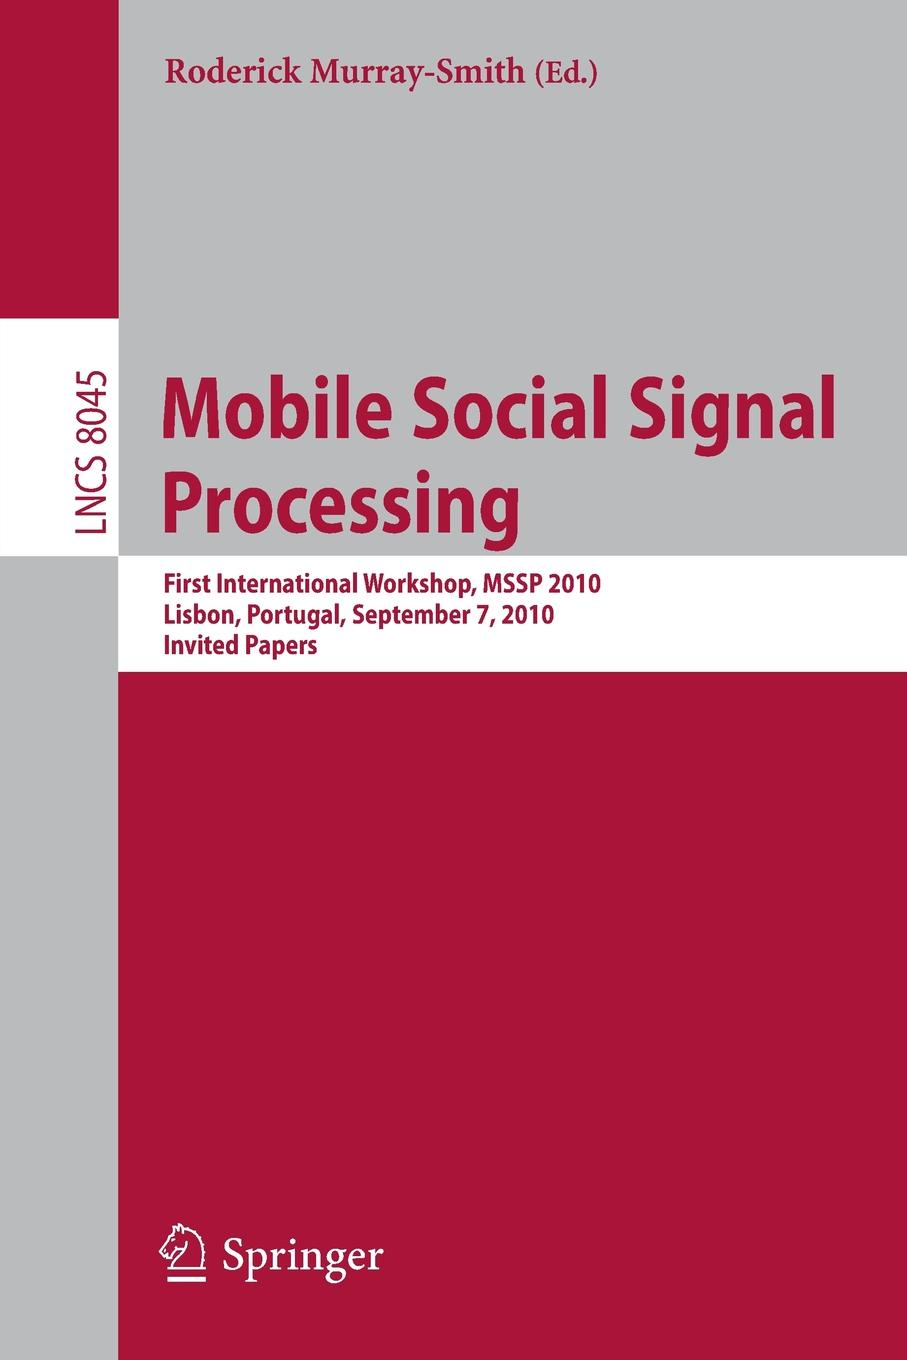 Mobile Social Signal Processing. First International Workshop, MSSP 2010, Lisbon, Portugal, September 7, 2010, Invited Papers ali akansu n financial signal processing and machine learning